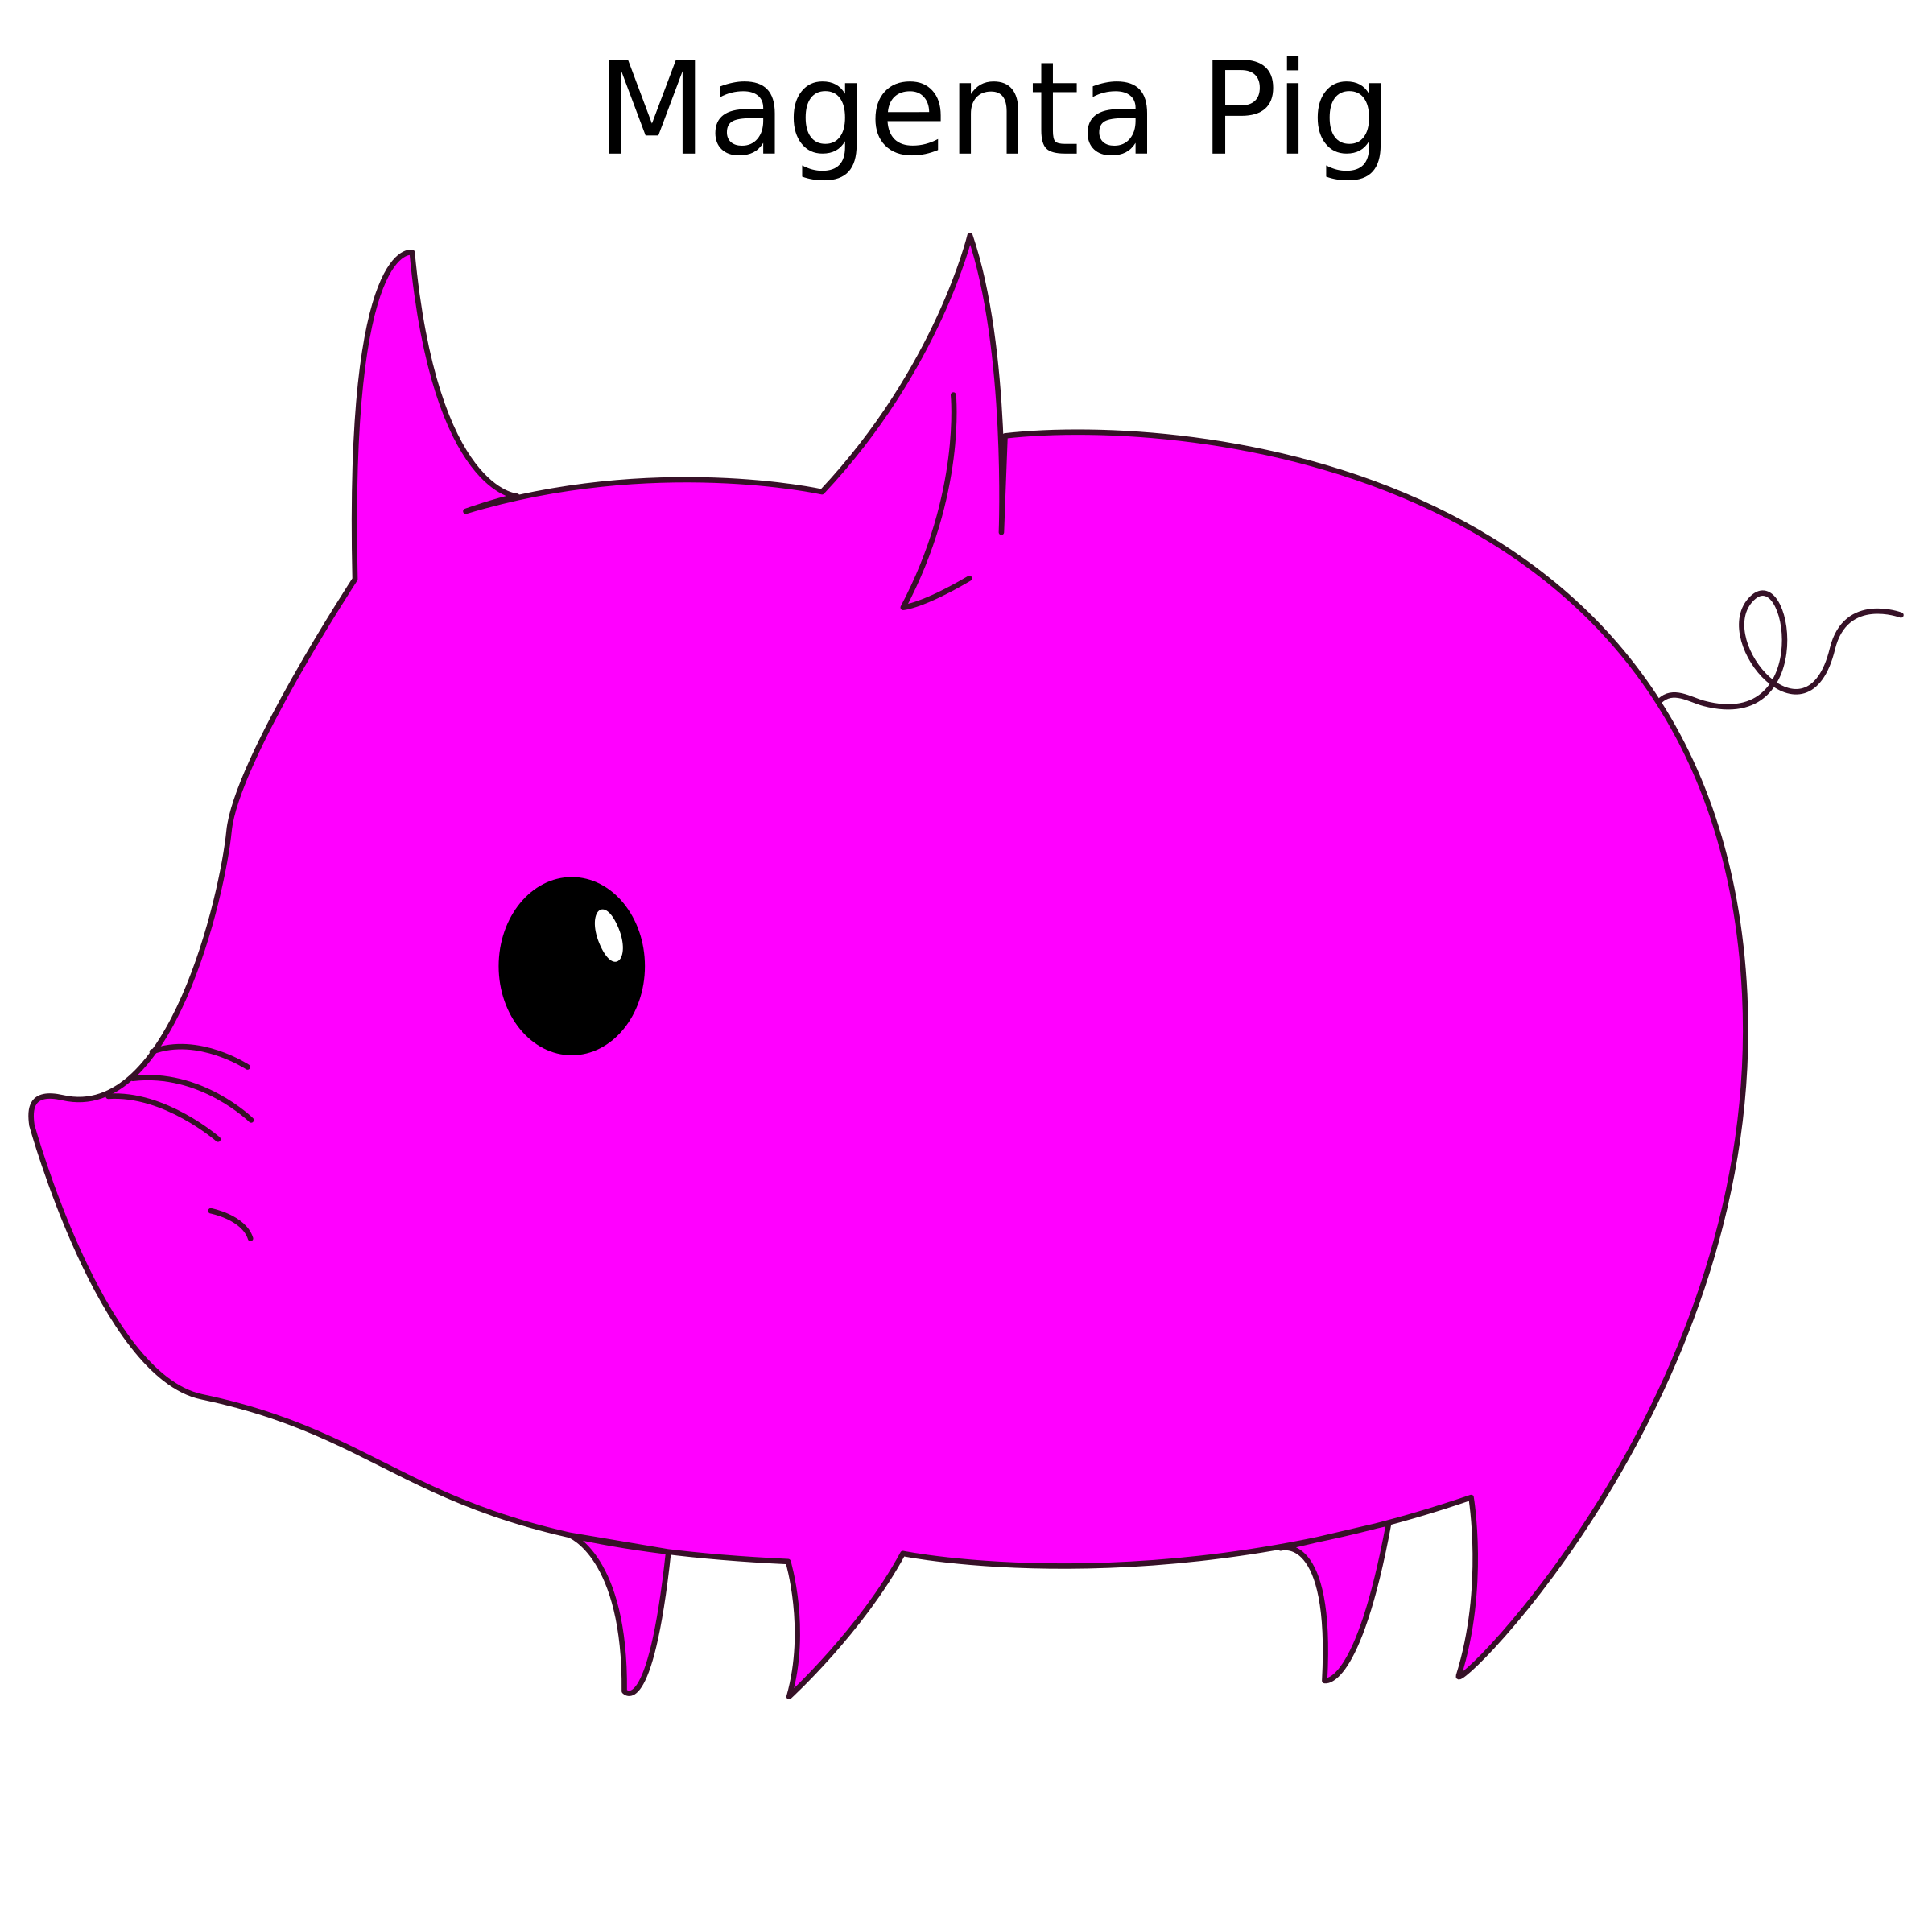 Magenta Pig by 10binary